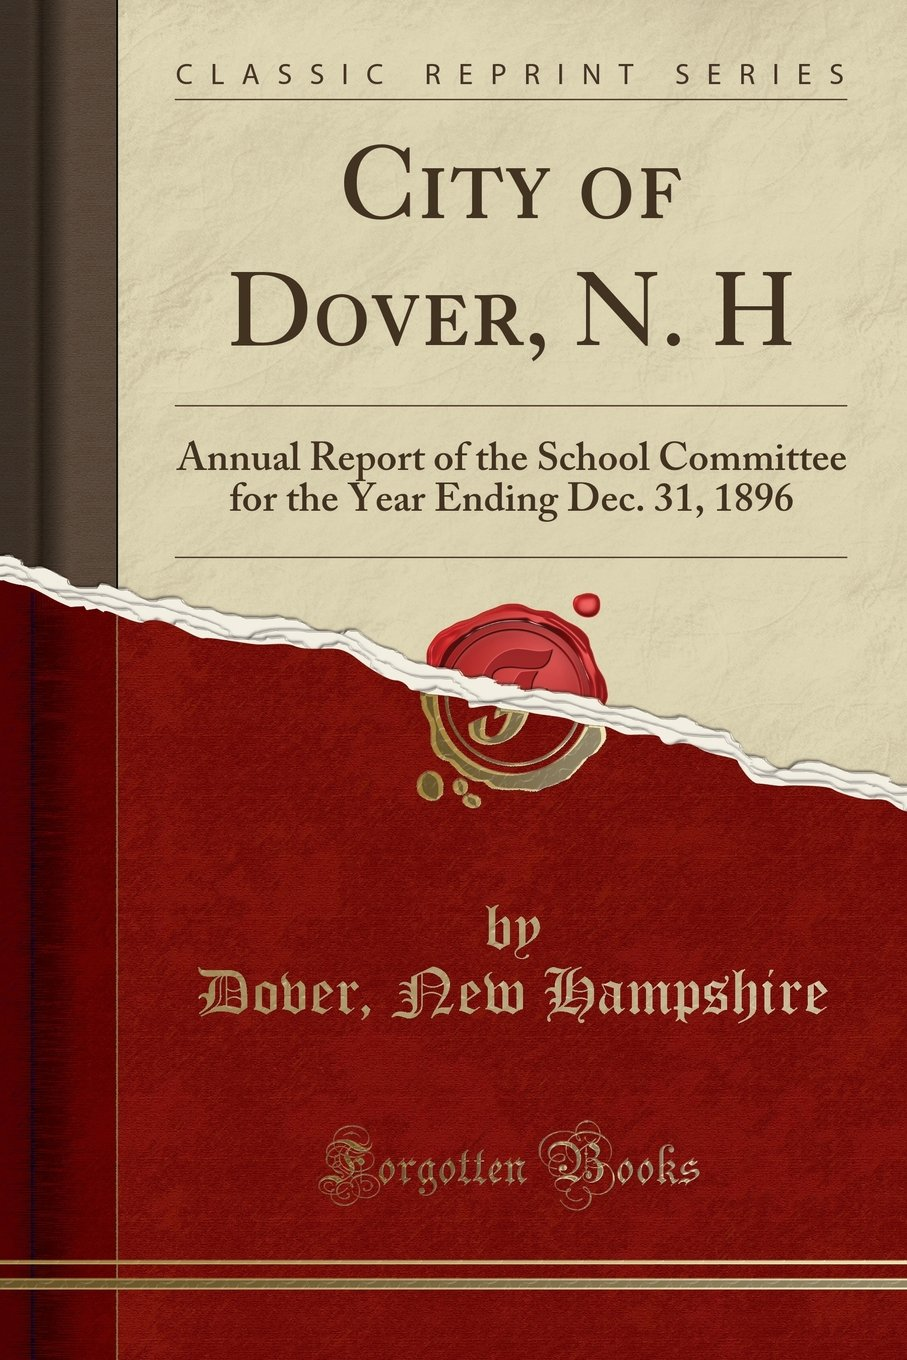 Download City of Dover, N. H: Annual Report of the School Committee for the Year Ending Dec. 31, 1896 (Classic Reprint) PDF